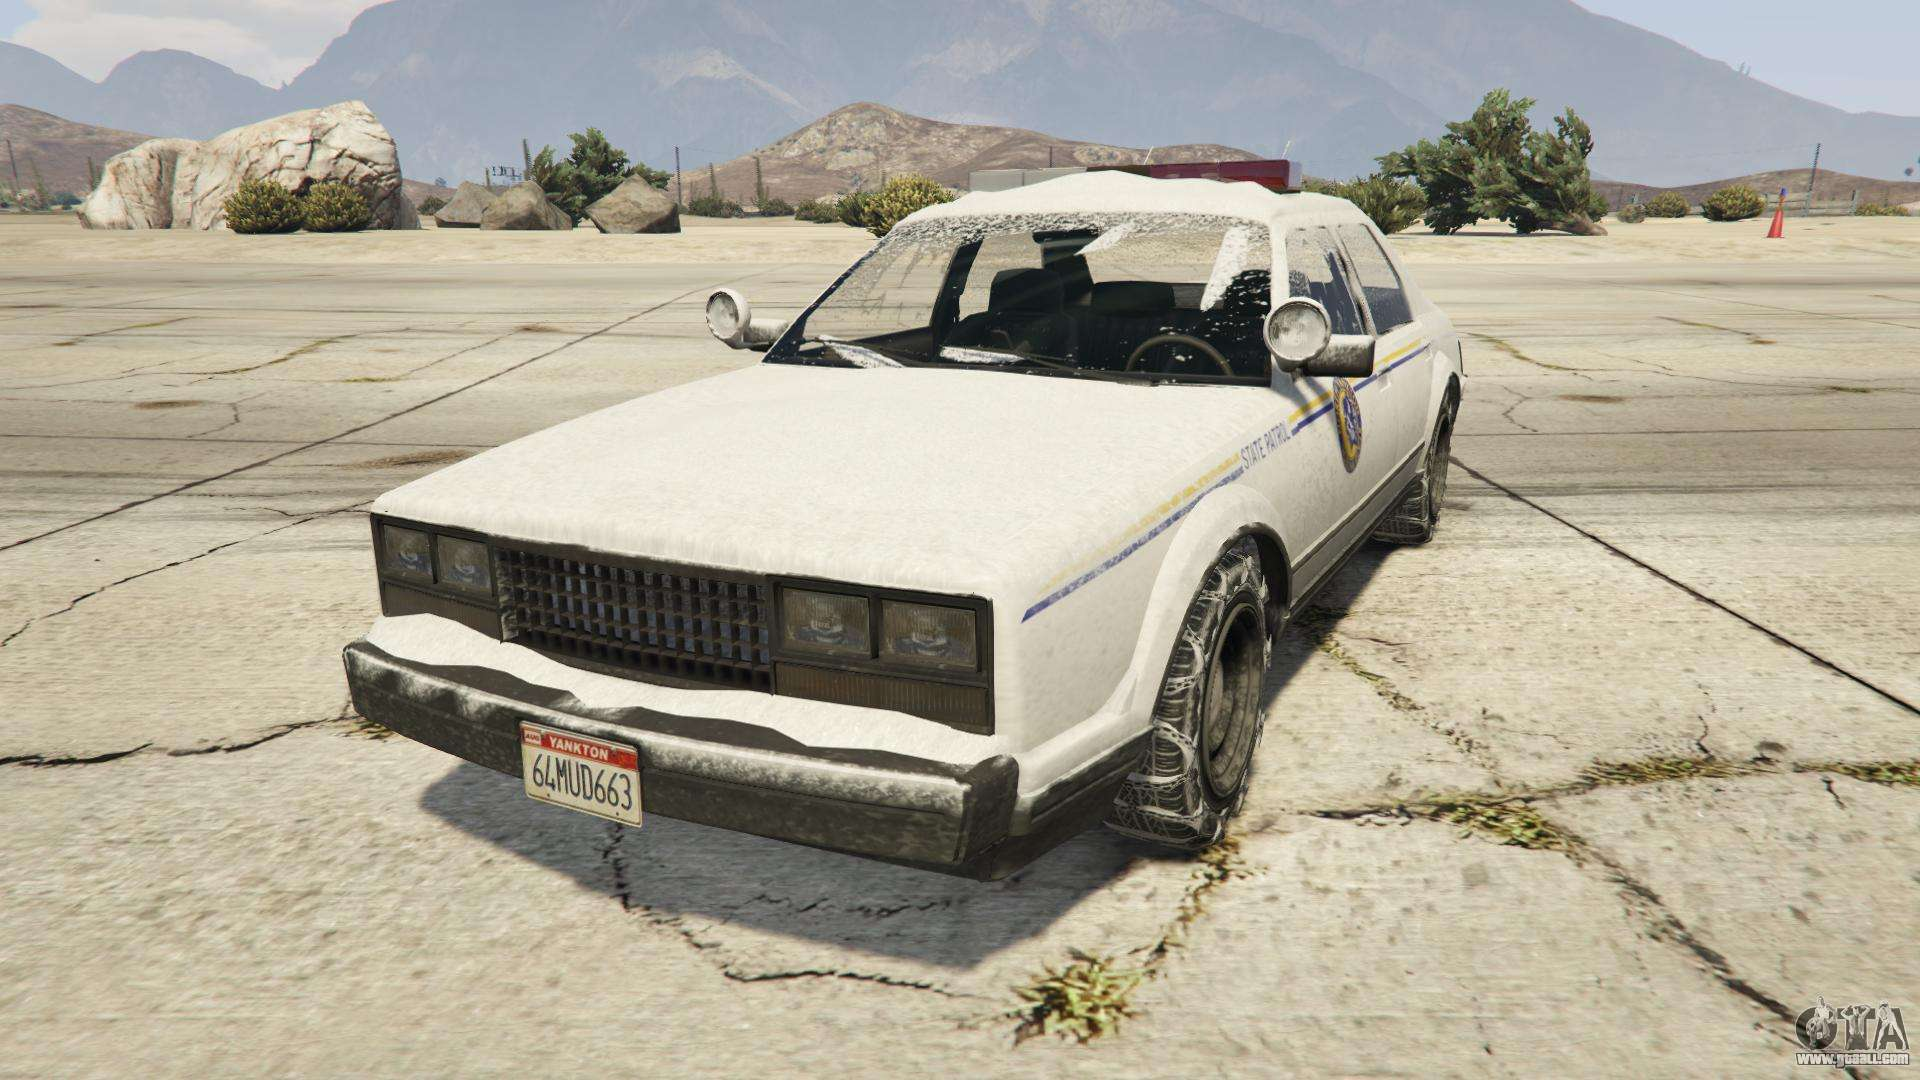 GTA 5 Albany Police Roadcrusier - front view